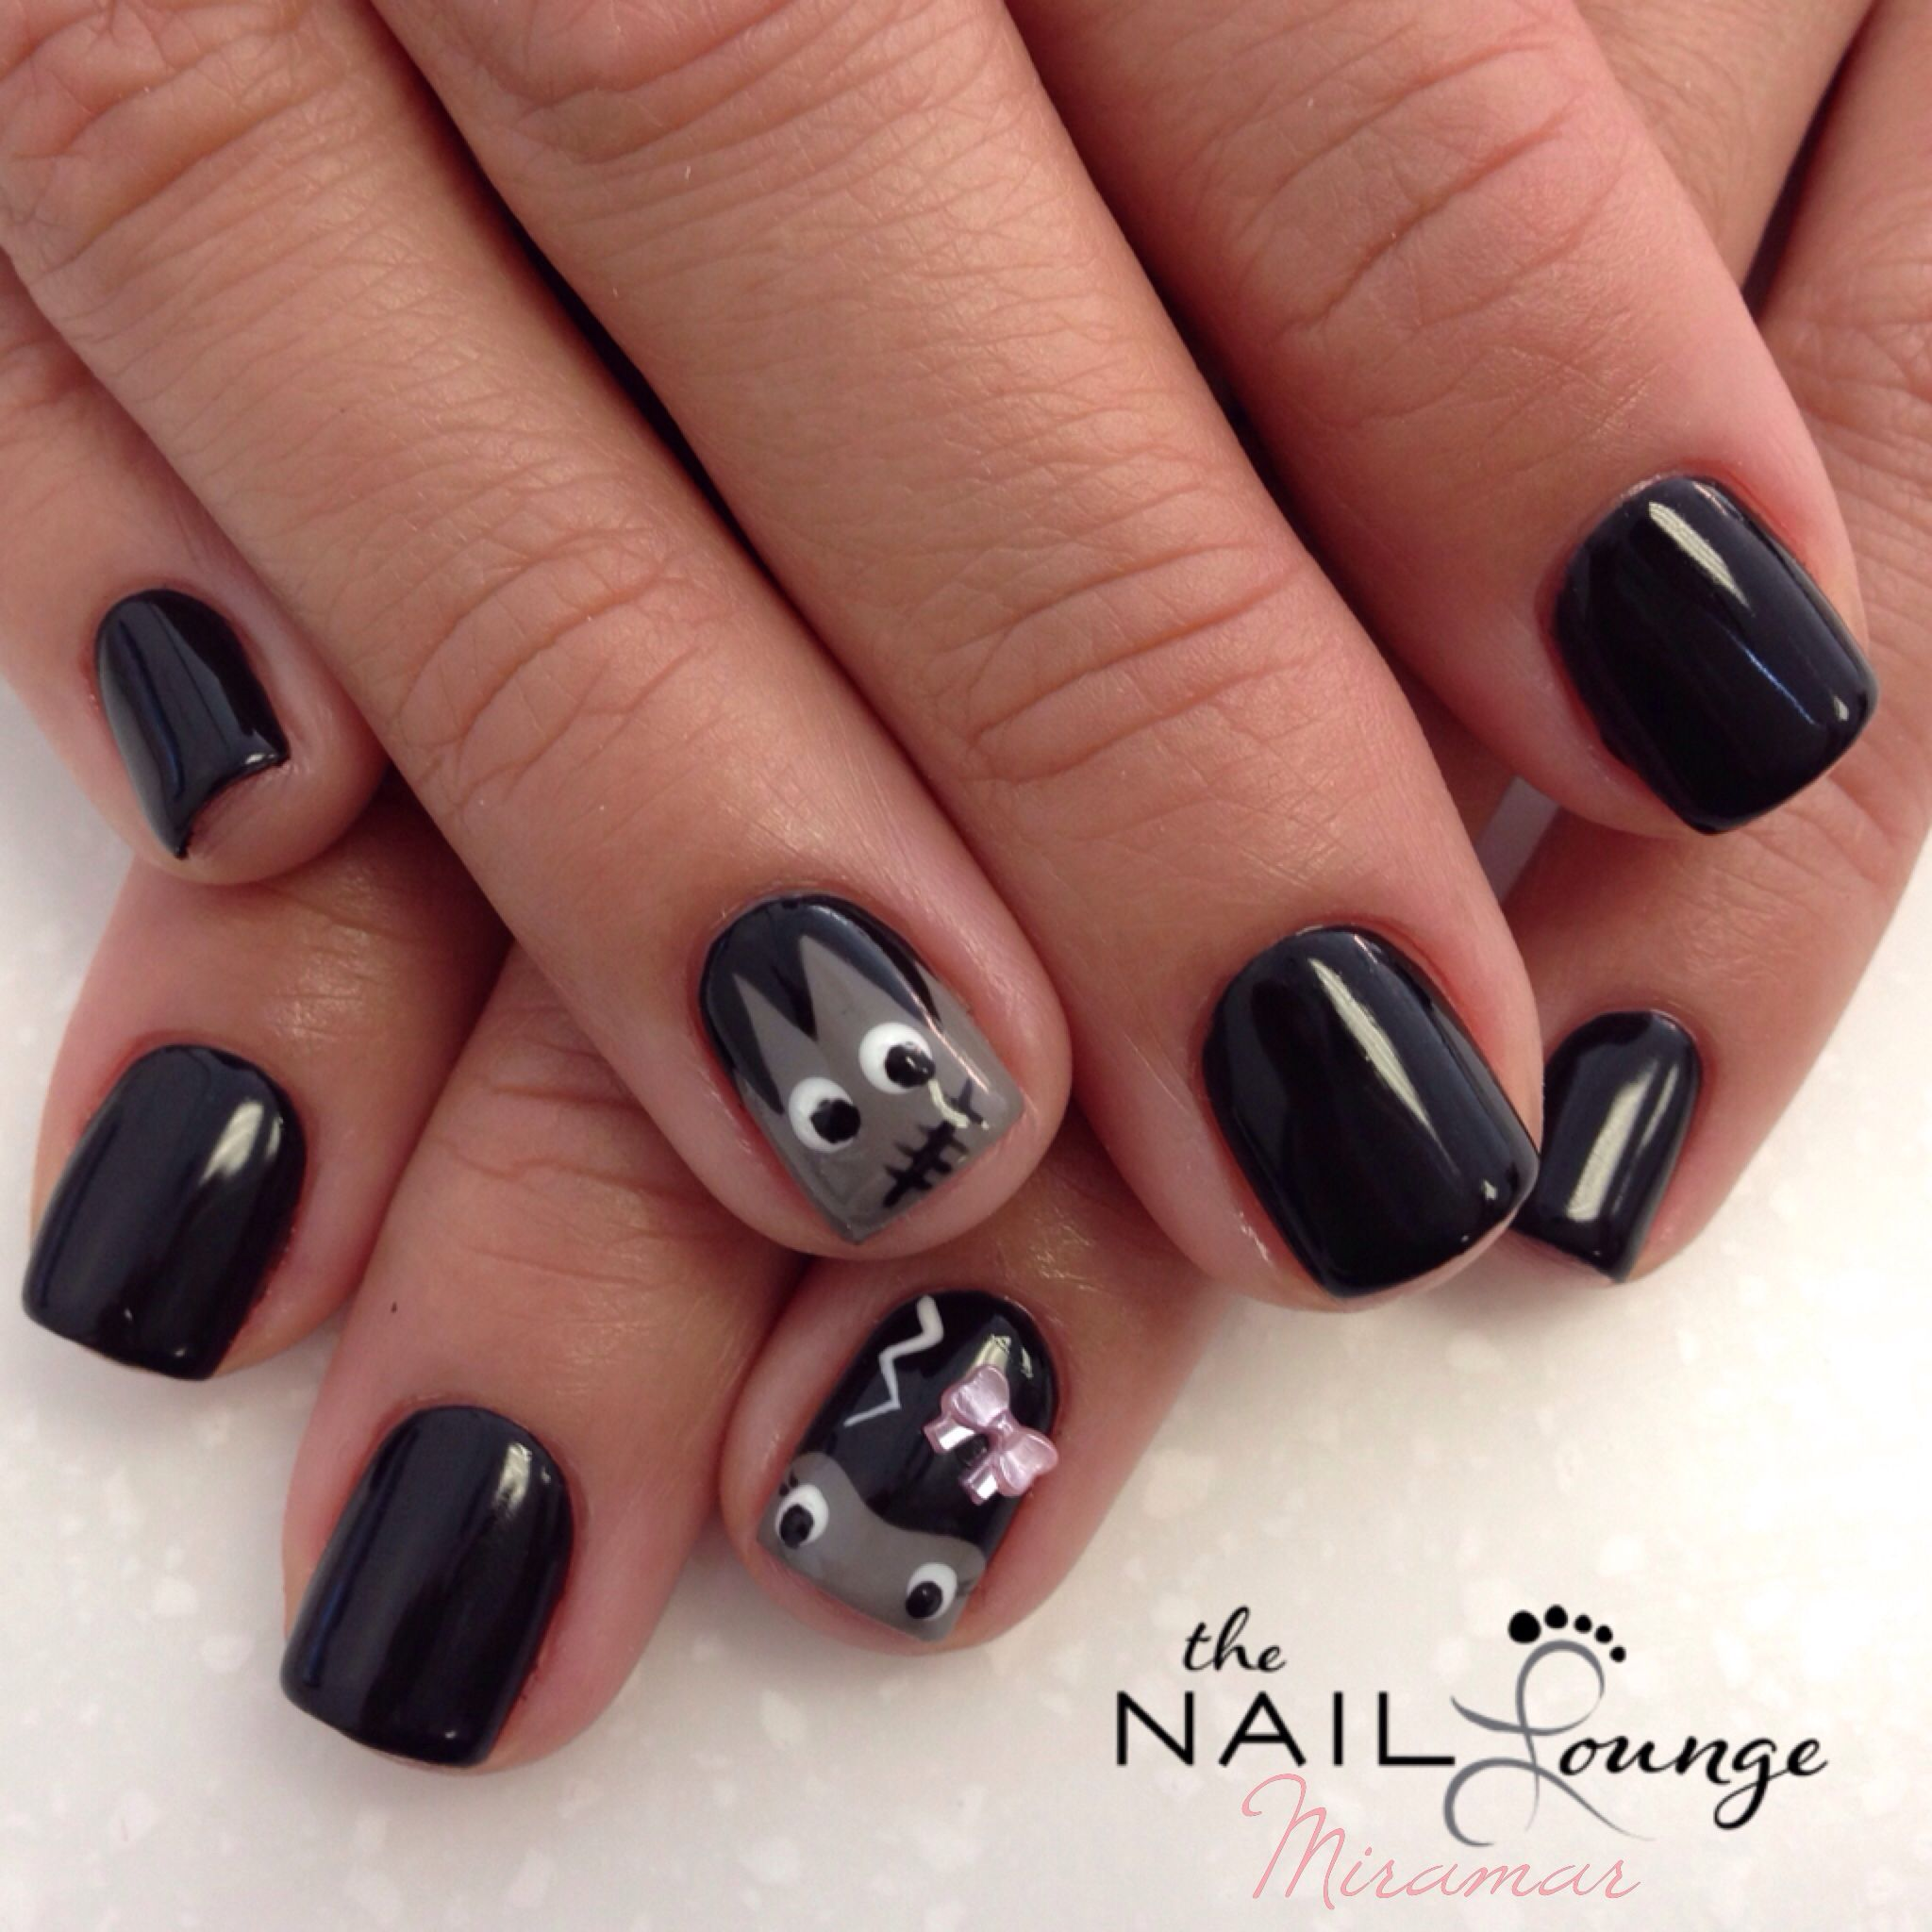 Pin By Sophie Milette On Nail Art Gel Nail Art Designs Gel Nail Art Halloween Nails